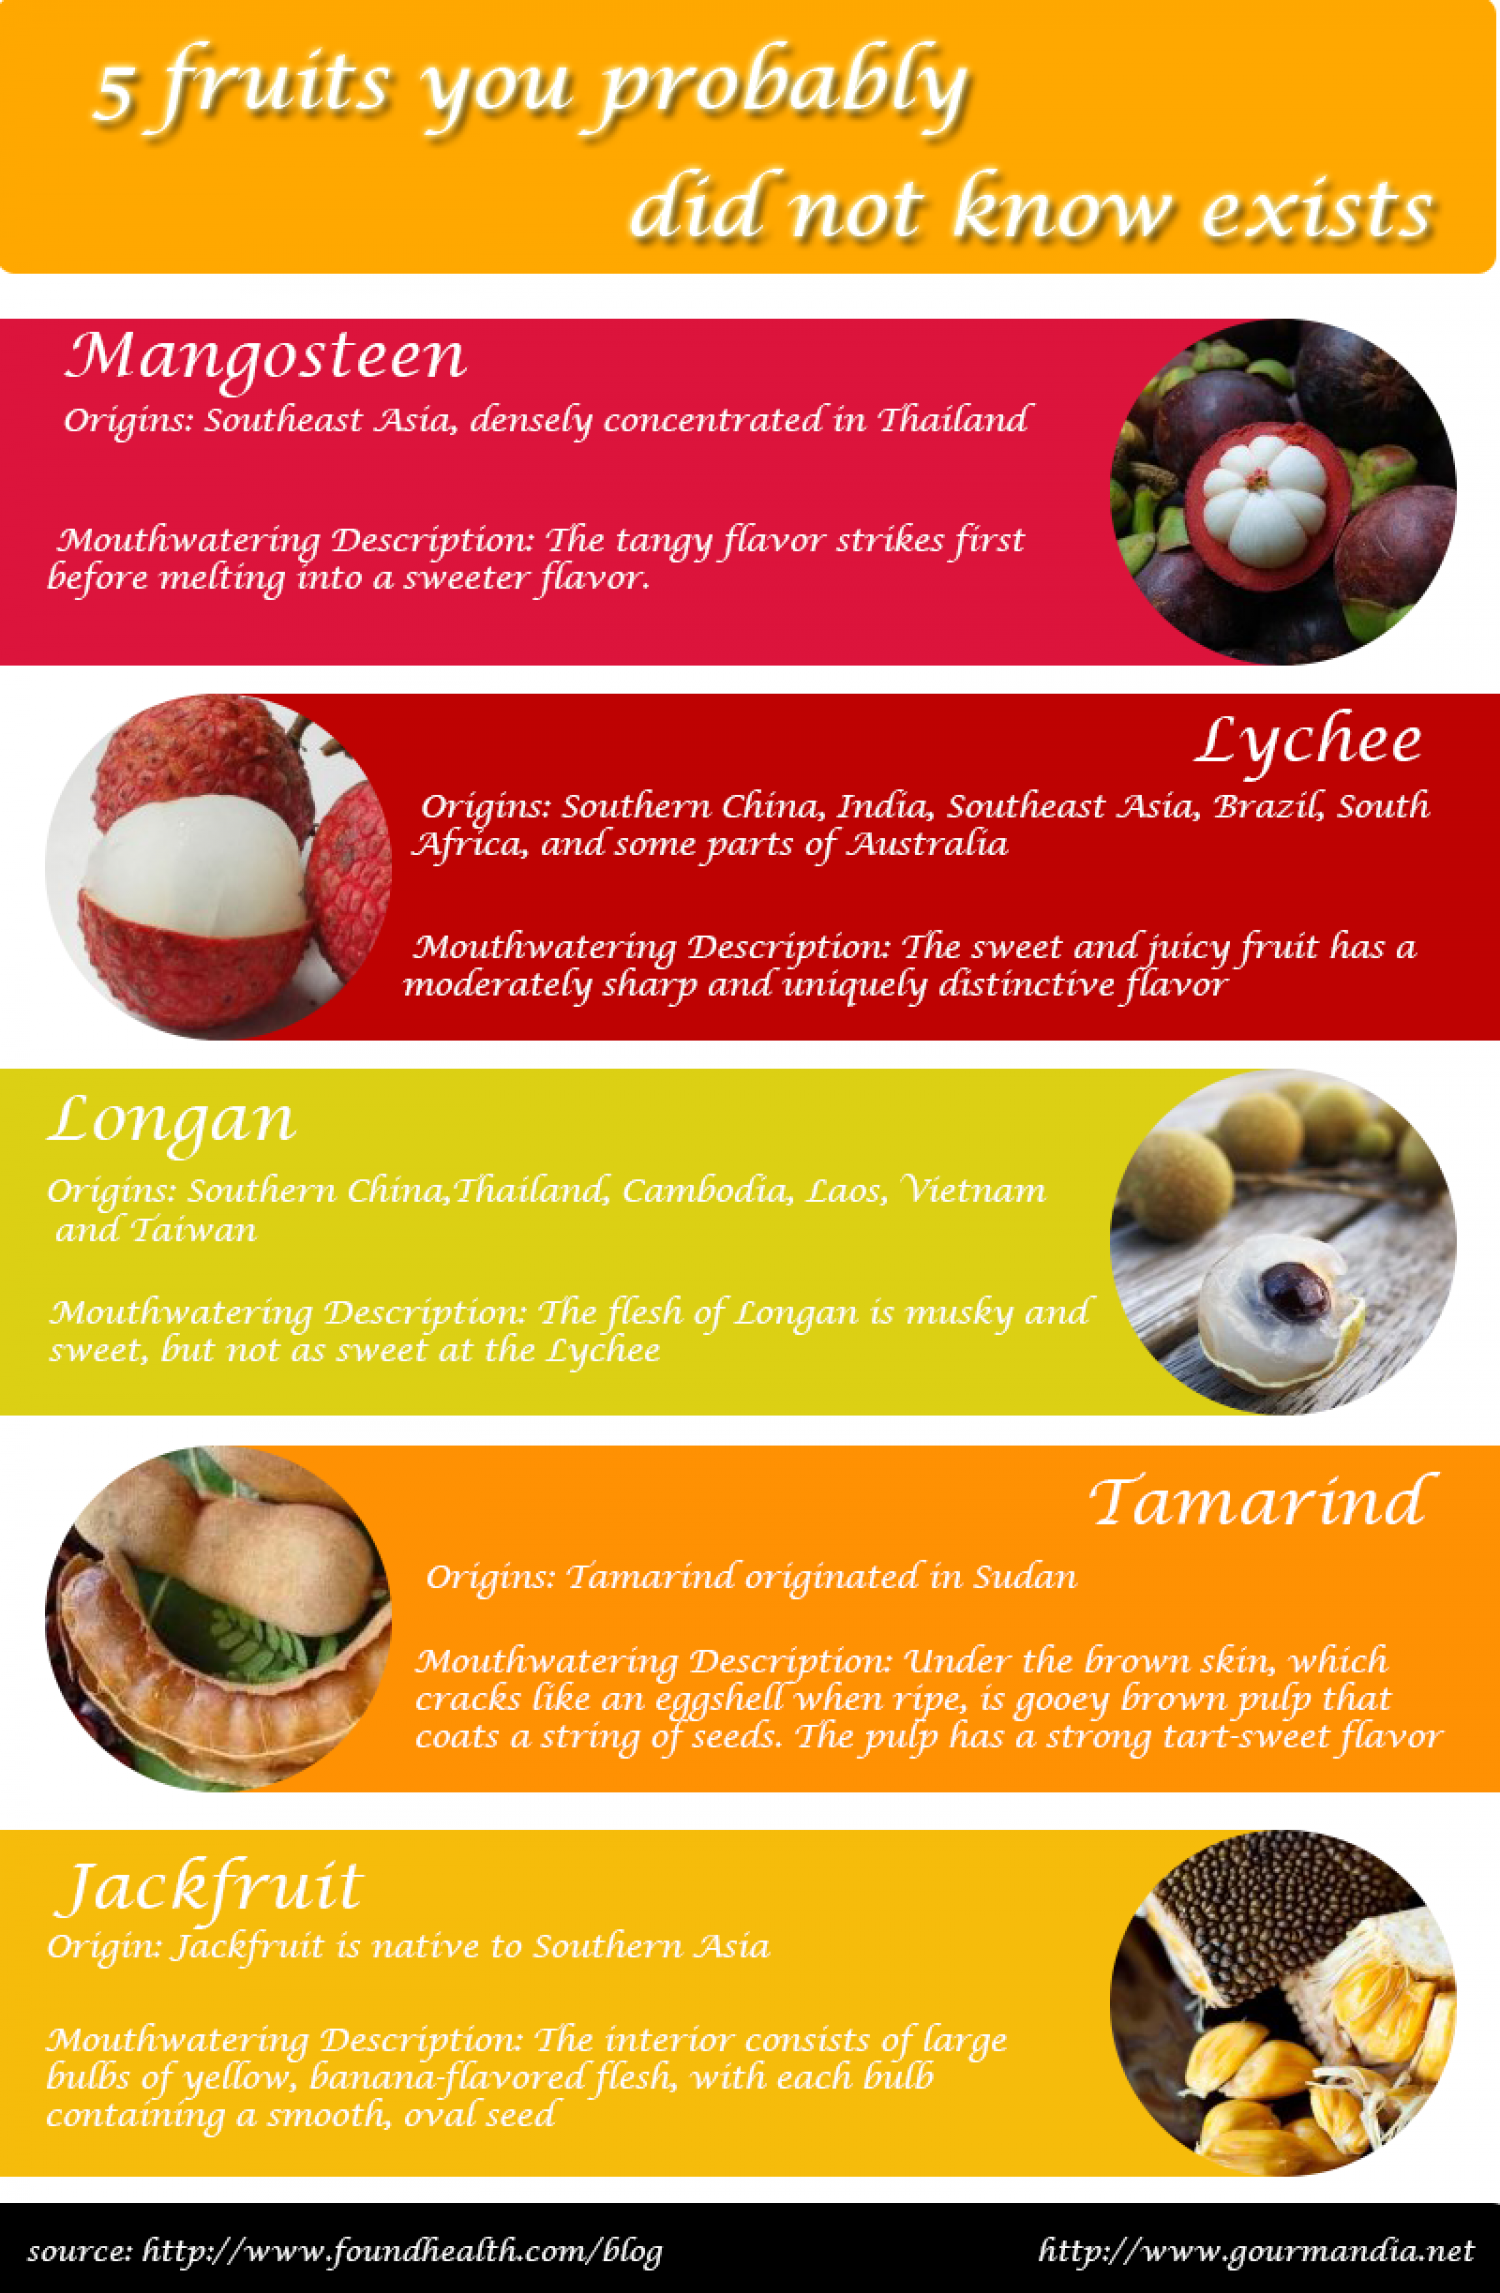 5 Fruits You Probably Didn't know Exists Infographic